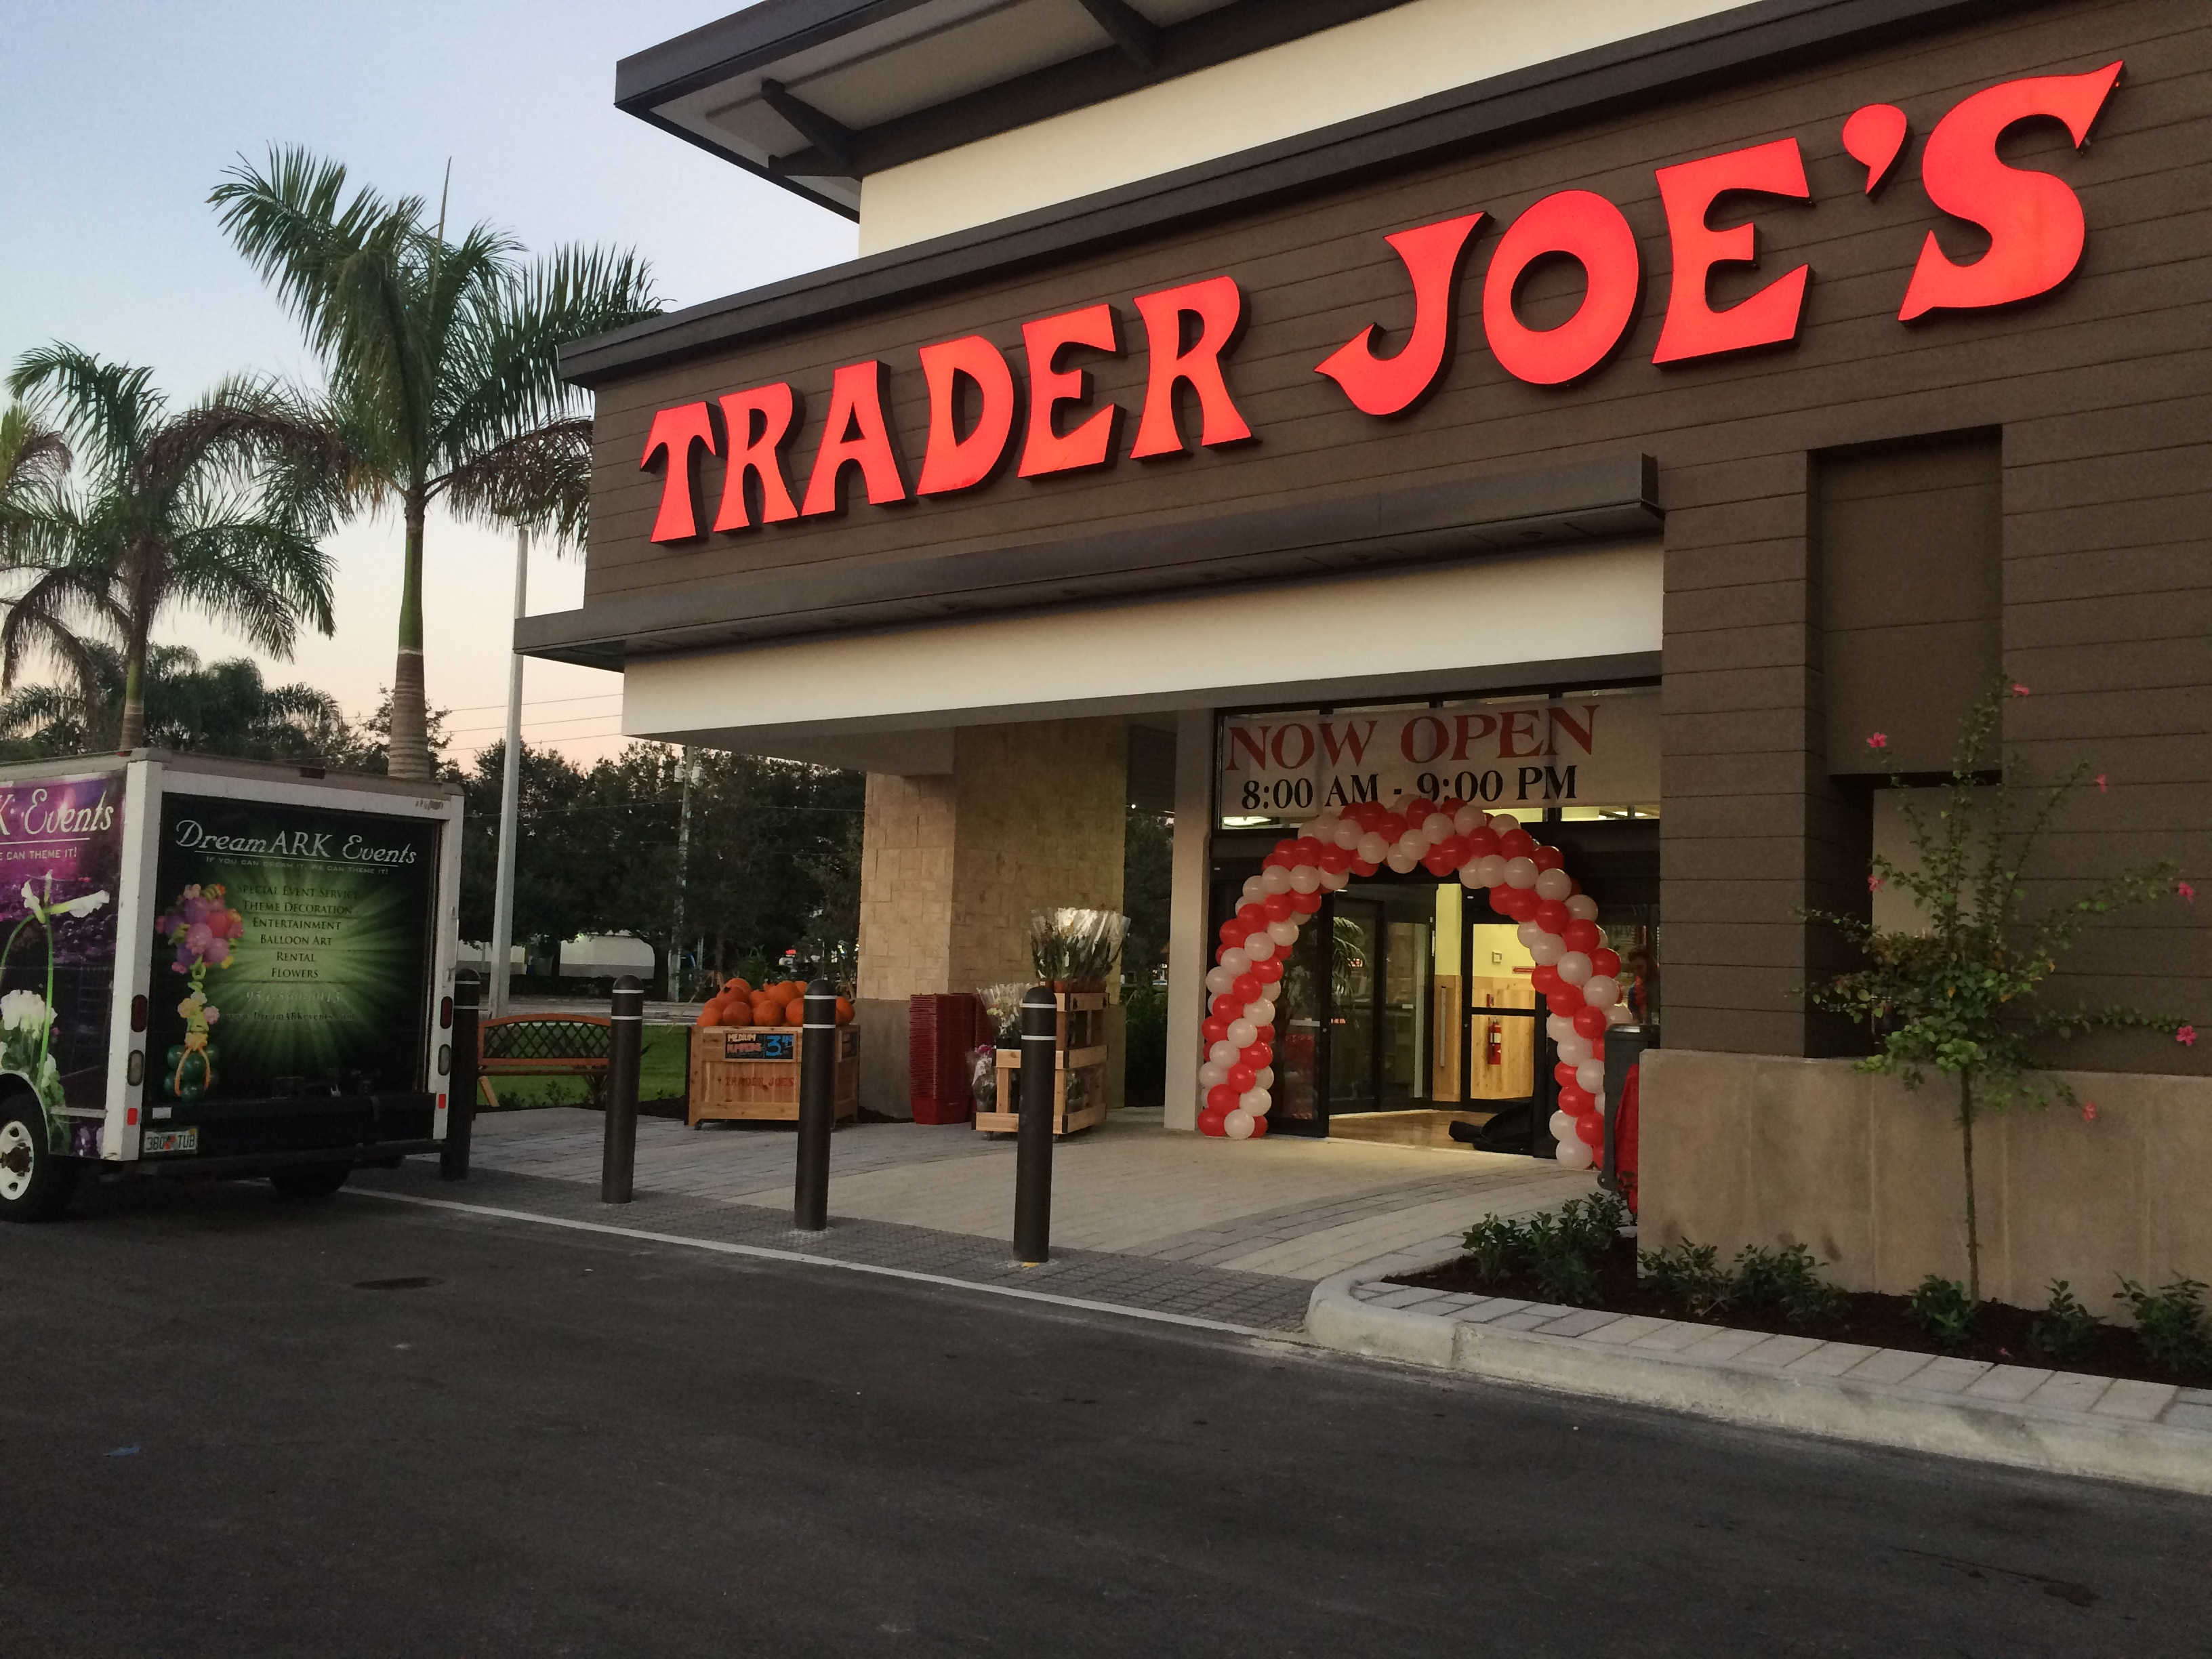 Trader Joe's balloon arch